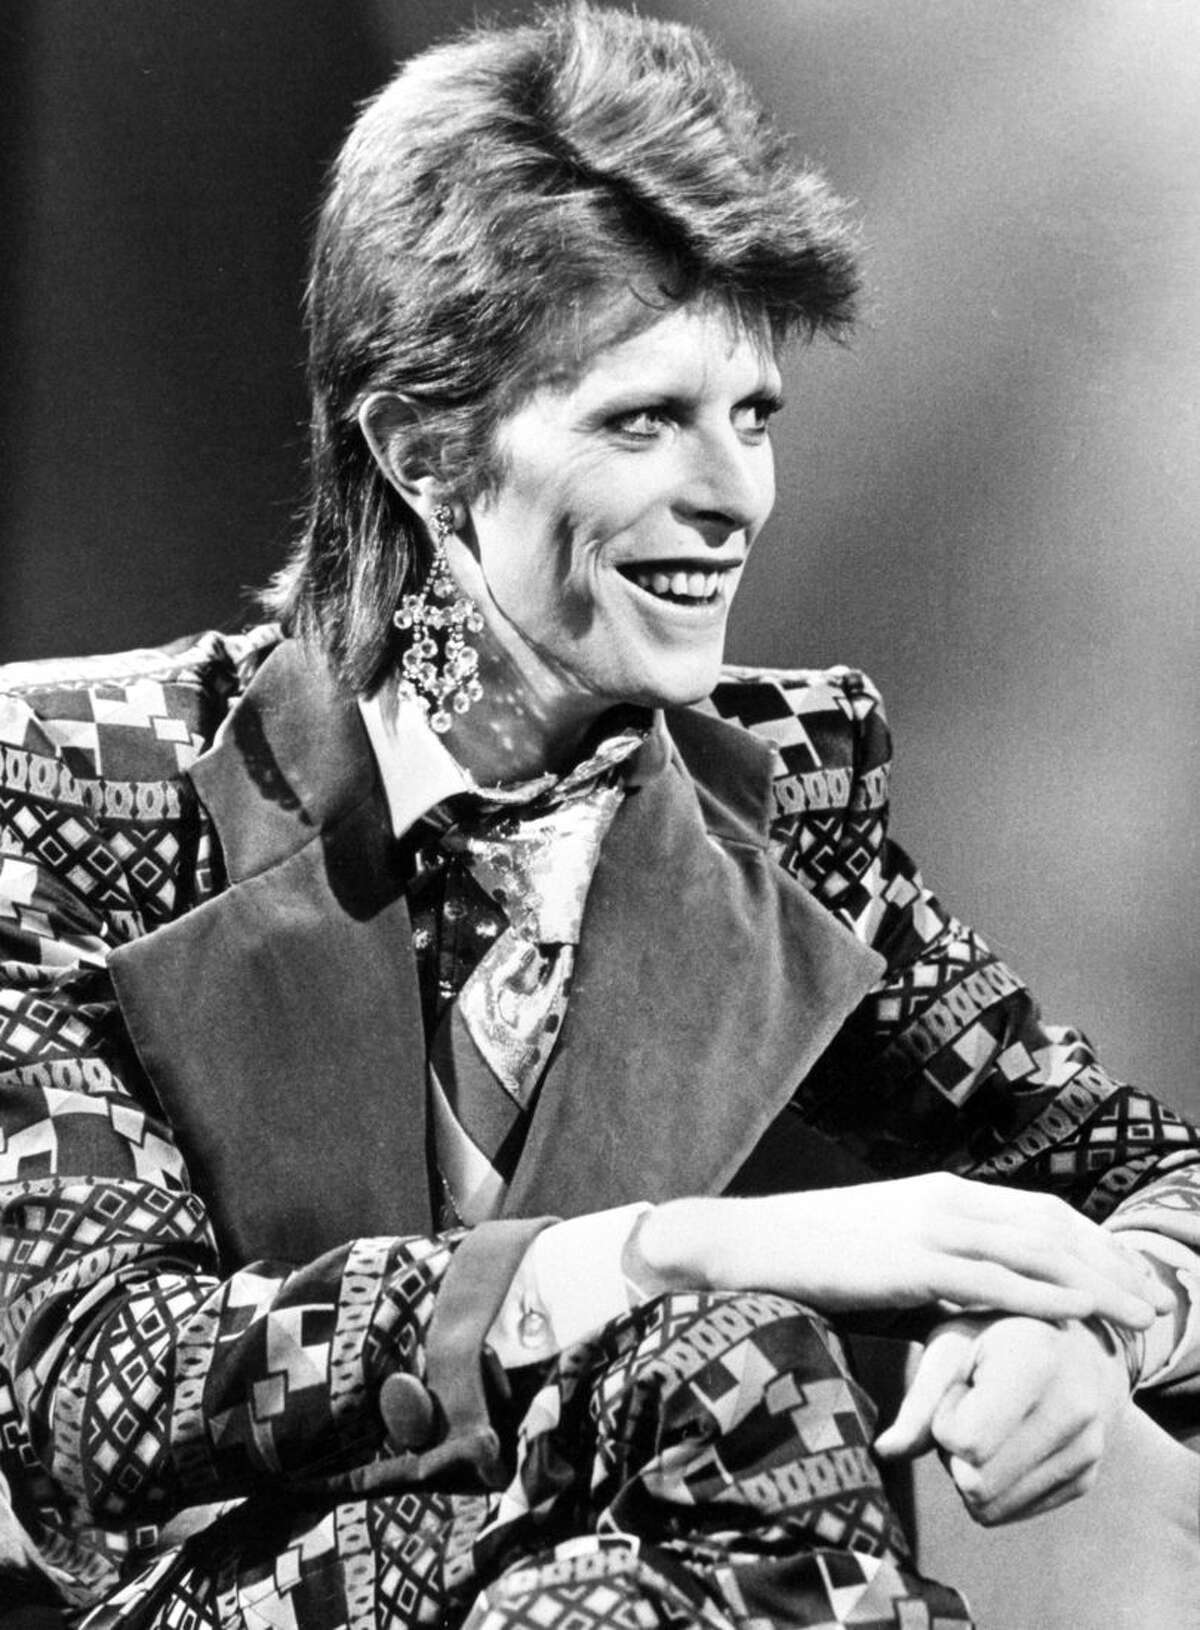 FILE - This is a Jan. 1, 1974 file photo of David Bowie. Bowie, the other-worldly musician who broke pop and rock boundaries with his creative musicianship, nonconformity, striking visuals and a genre-bending persona he christened Ziggy Stardust, died of cancer Sunday Jan. 10, 2016. He was 69 and had just released a new album. (PA, File via AP) UNITED KINGDOM OUT NO SALES NO ARCHIVE